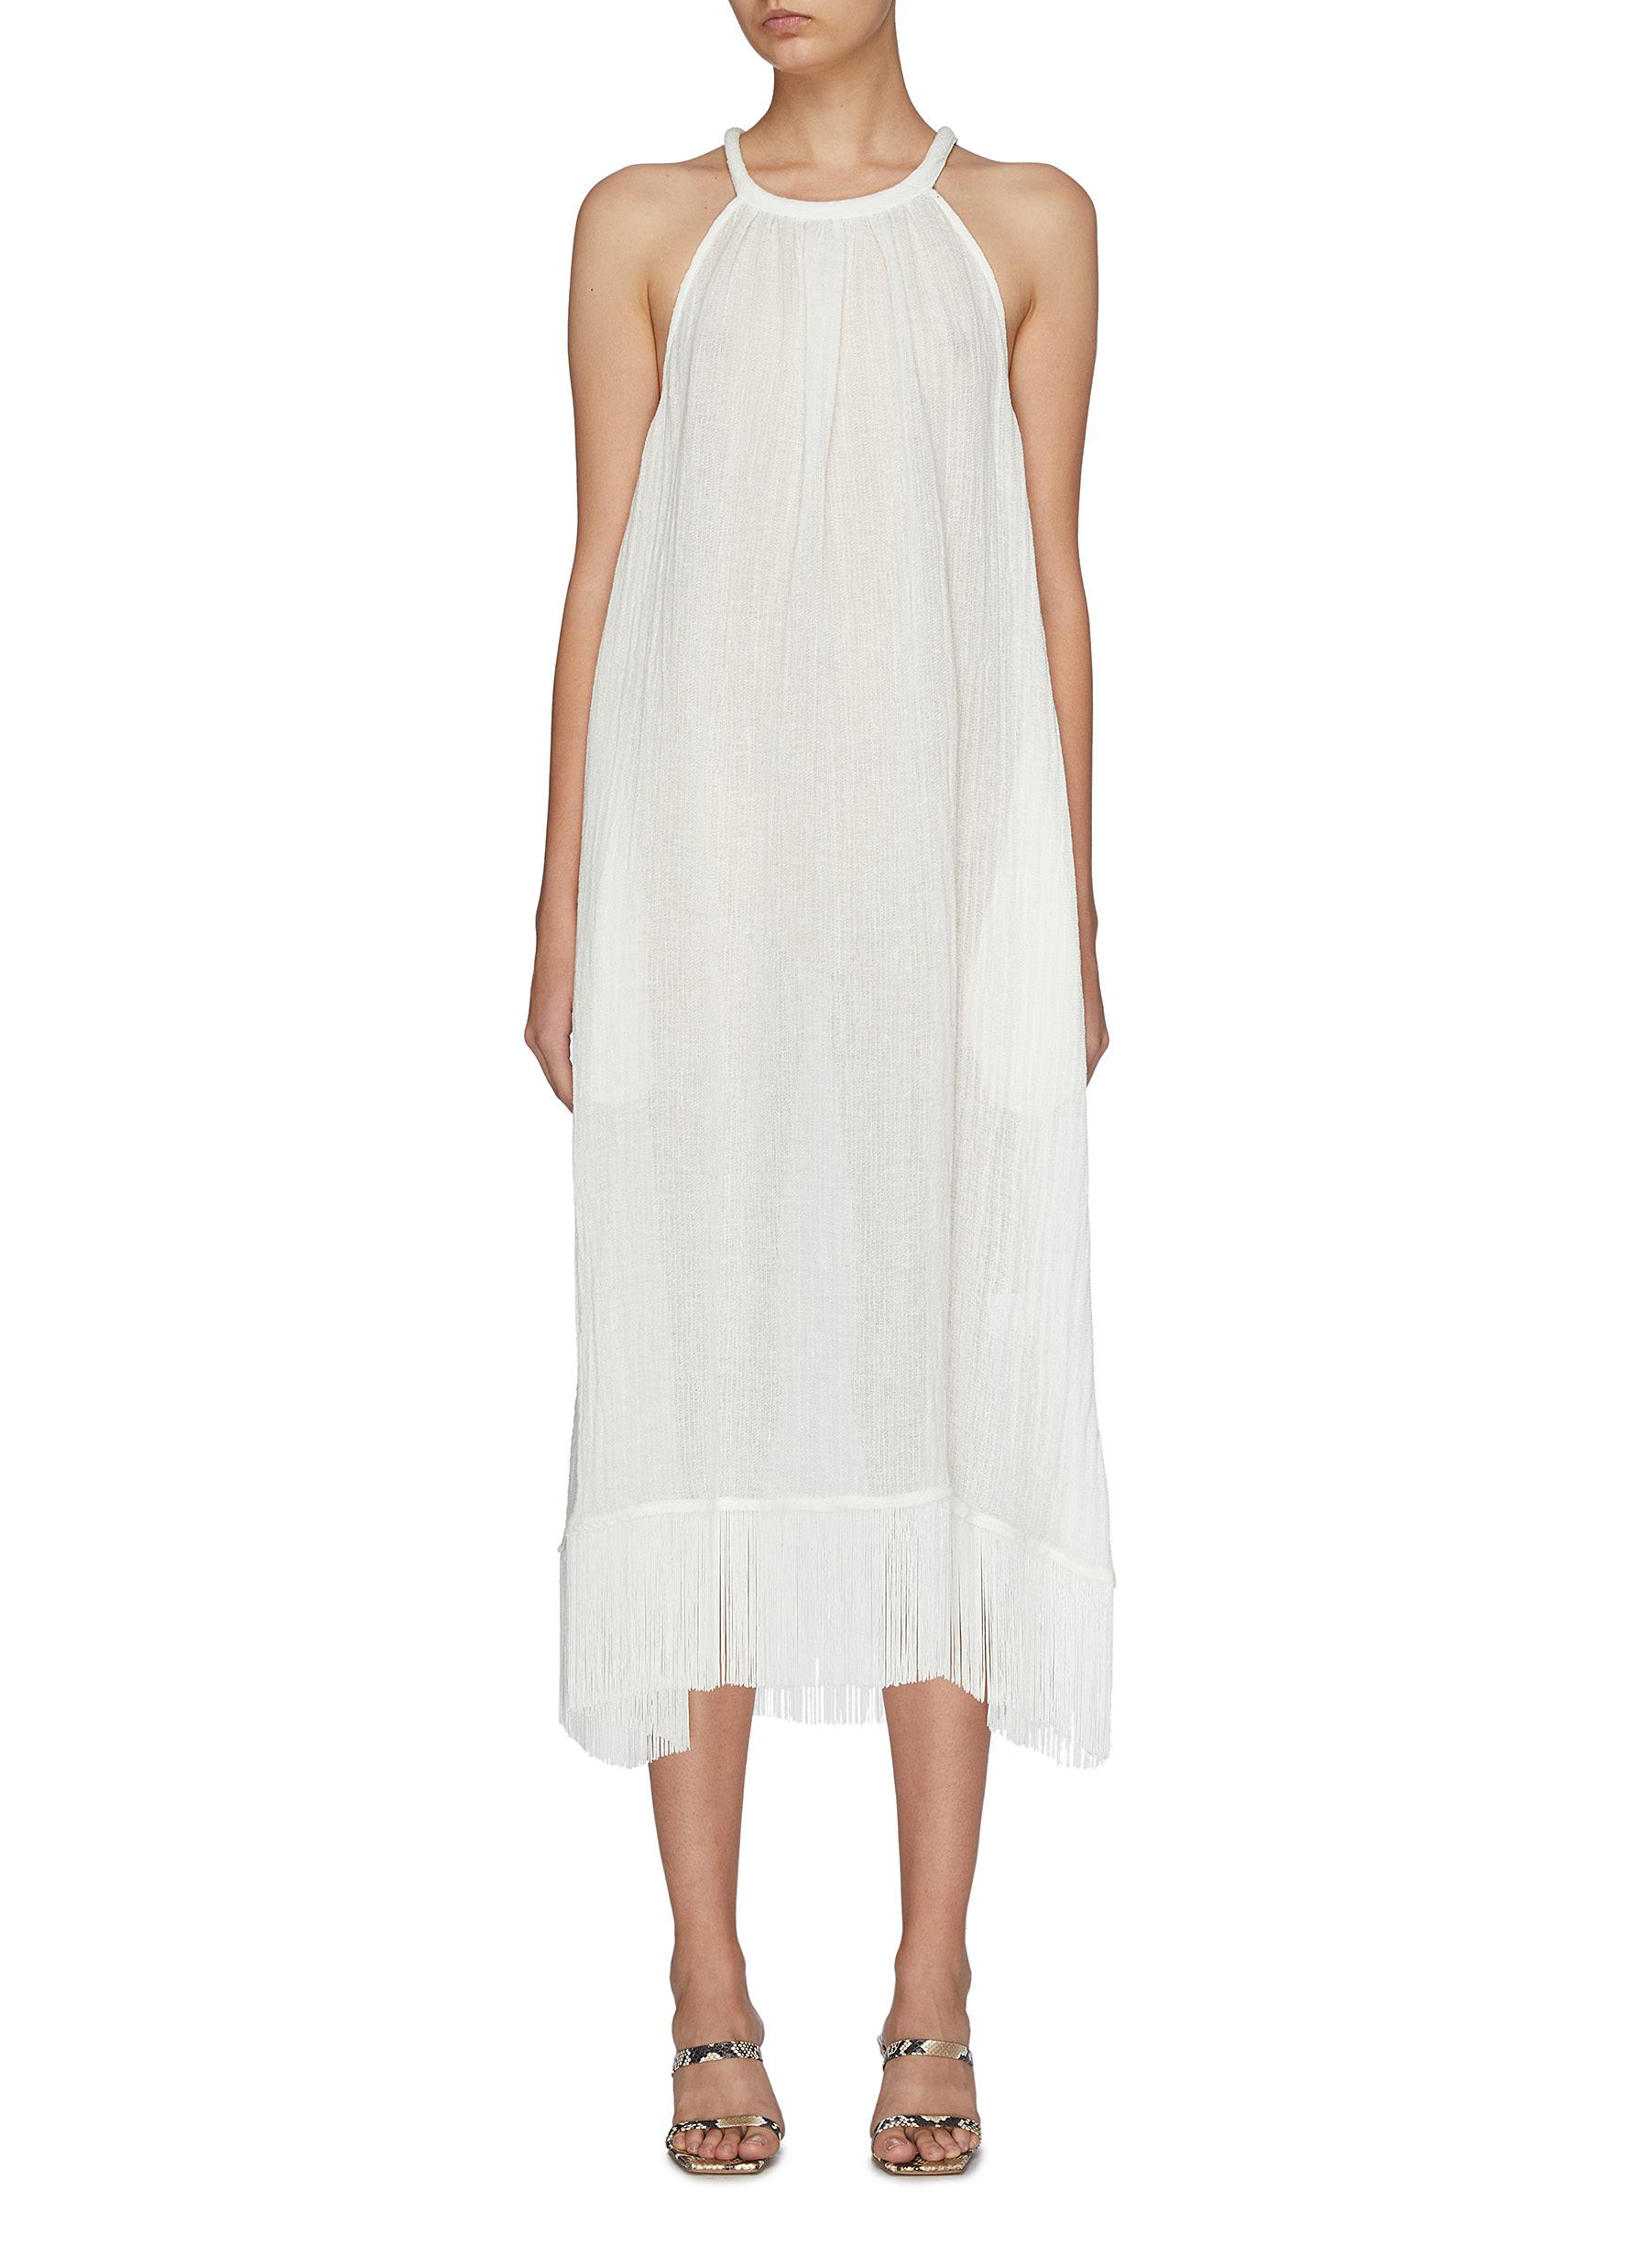 Ojai fringe hem linen blend sleeveless dress by Lisa Marie Fernandez